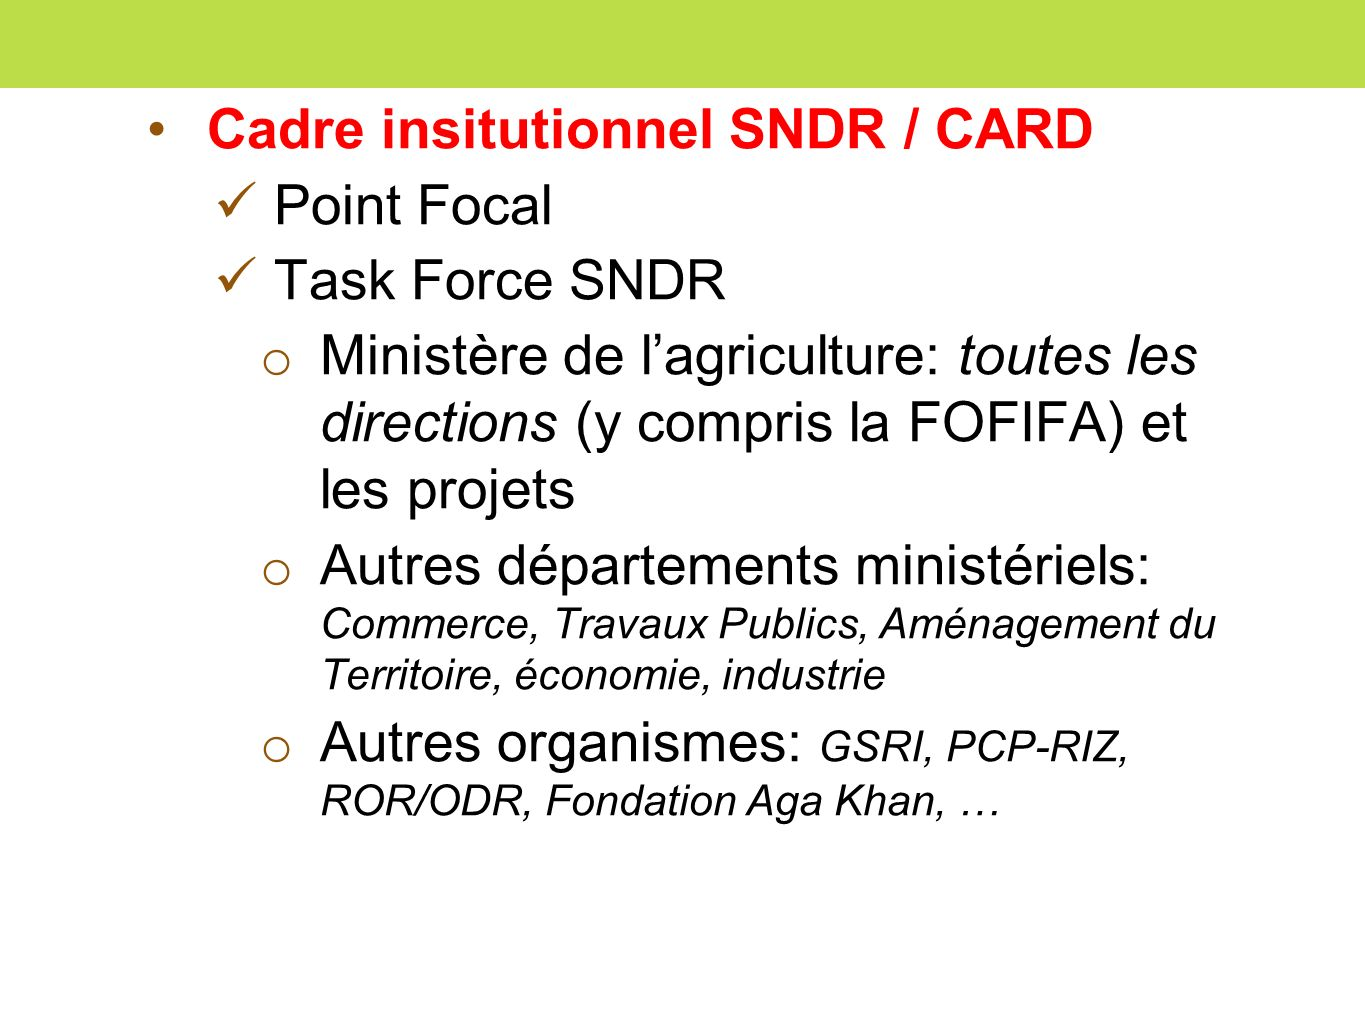 Cadre insitutionnel SNDR / CARD